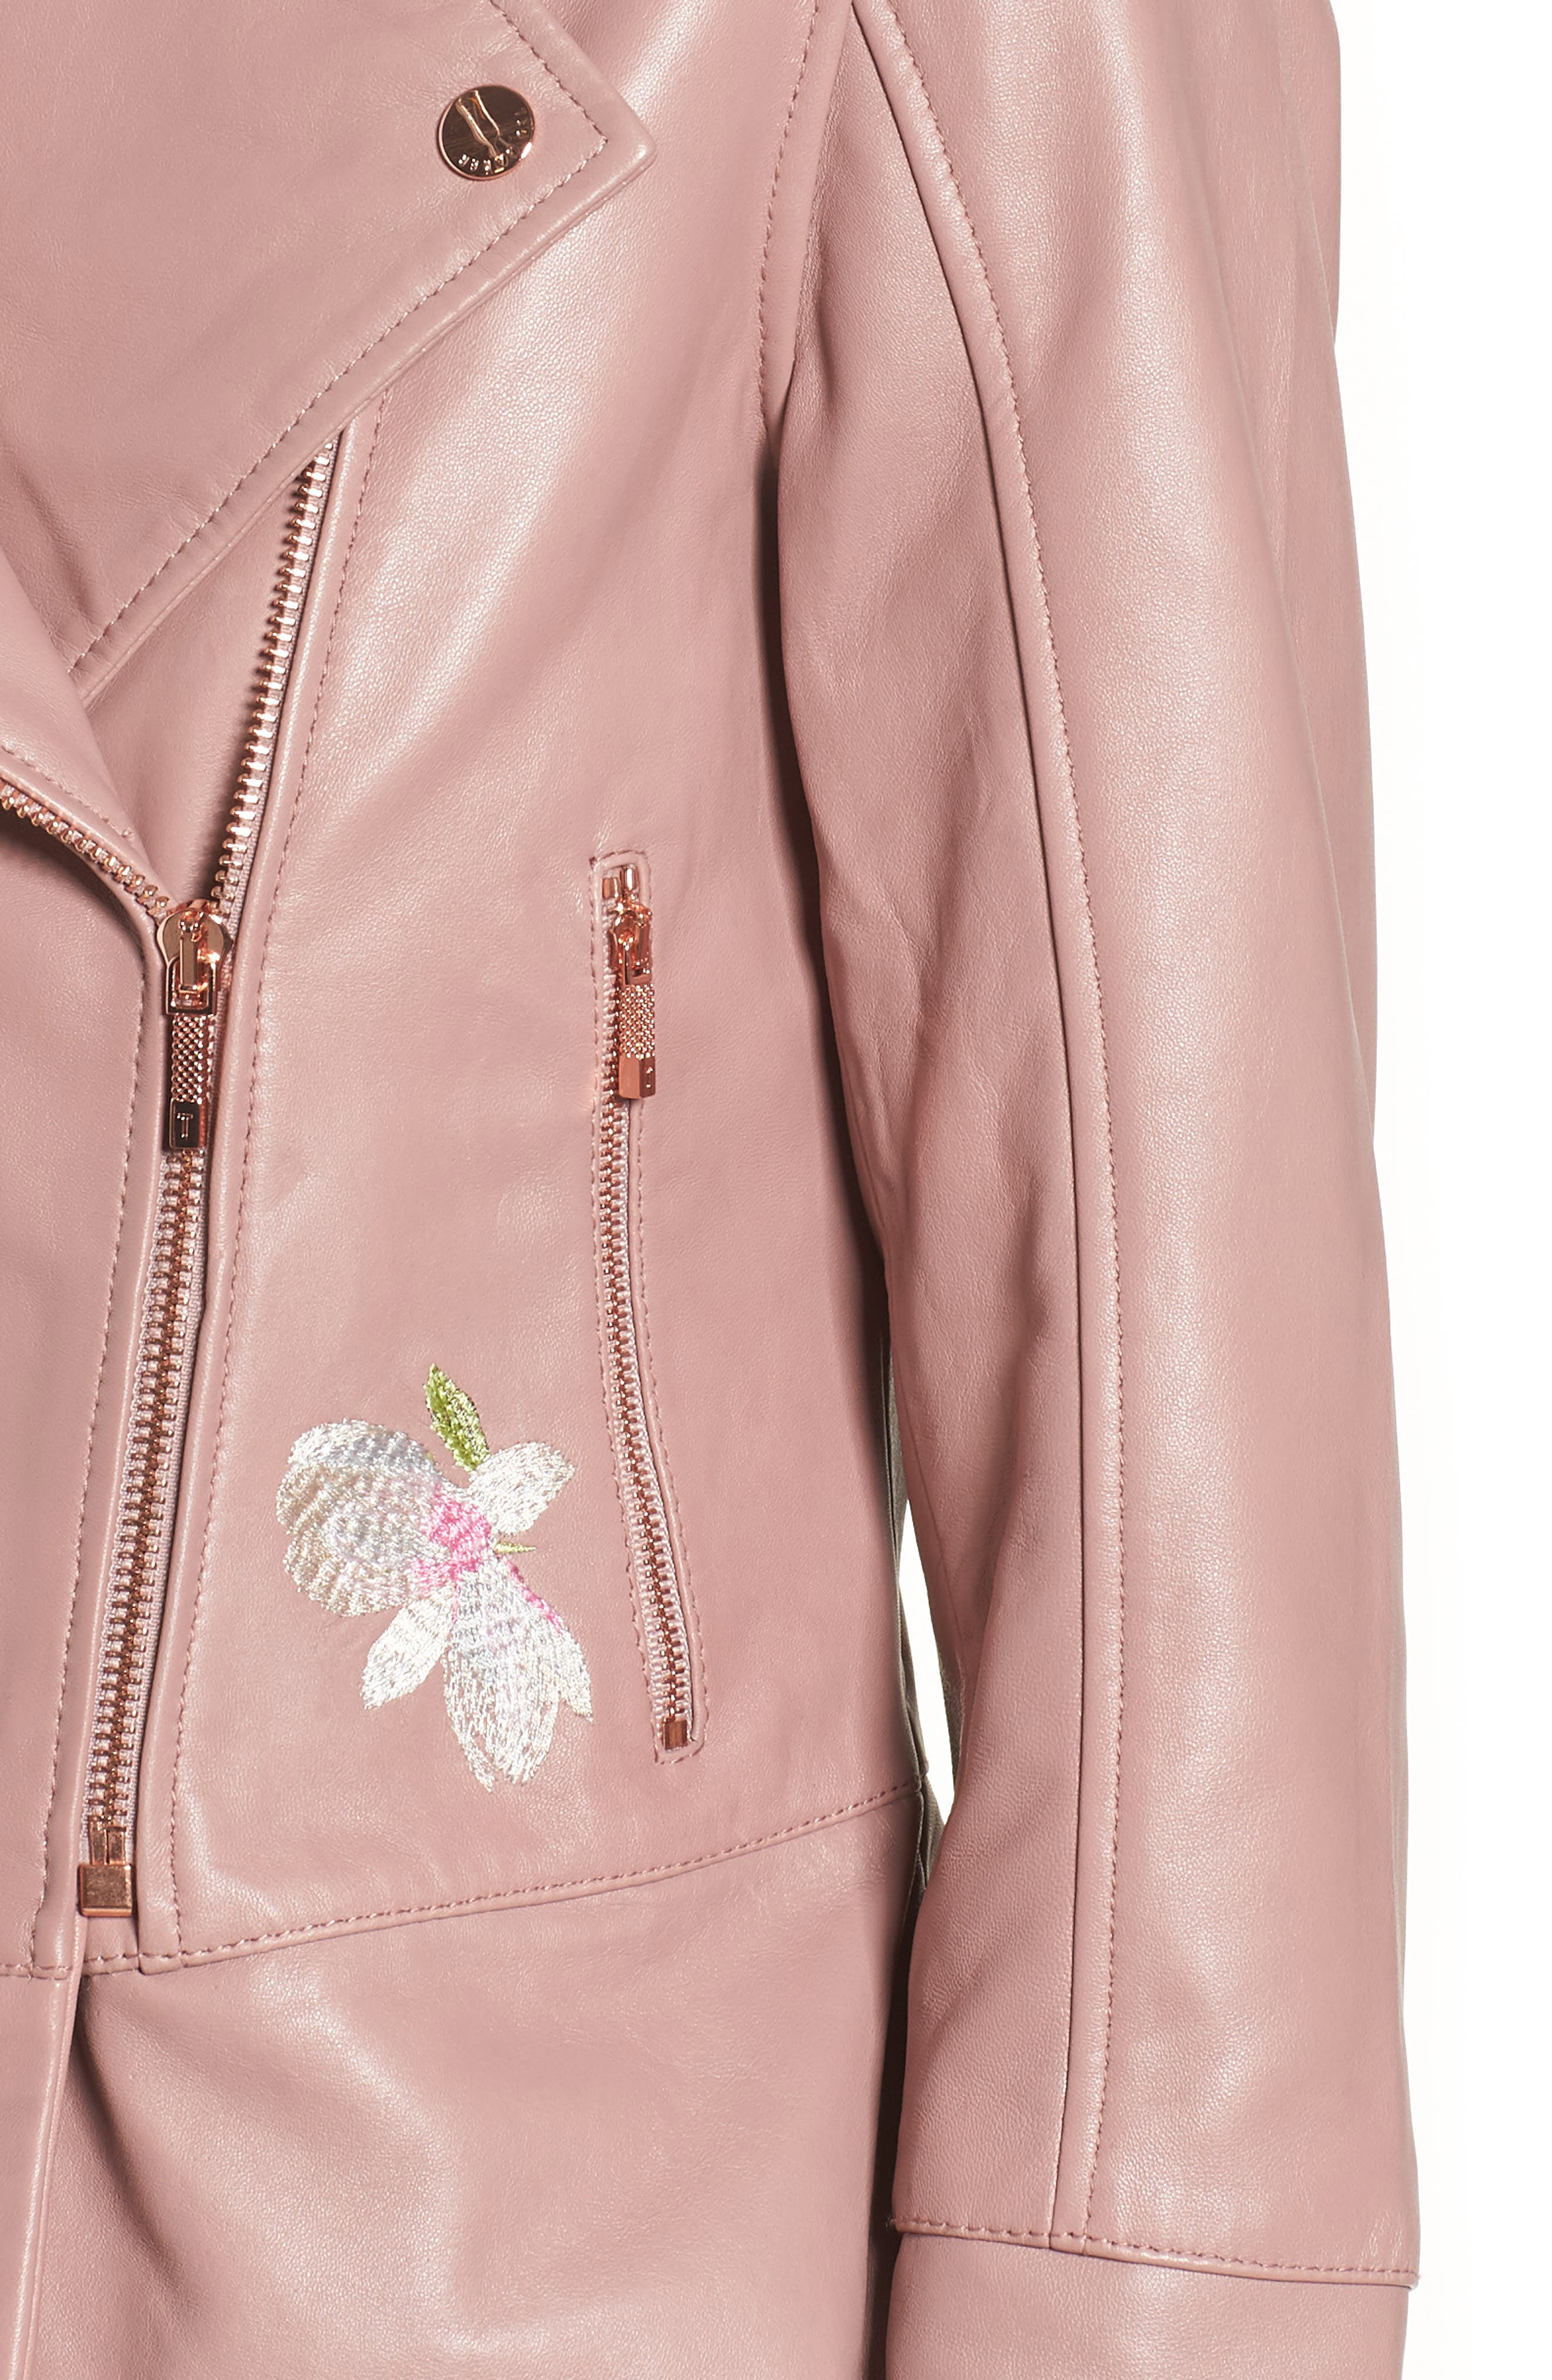 Harmony Embroidered Leather Biker Jacket,                             Alternate thumbnail 4, color,                             652